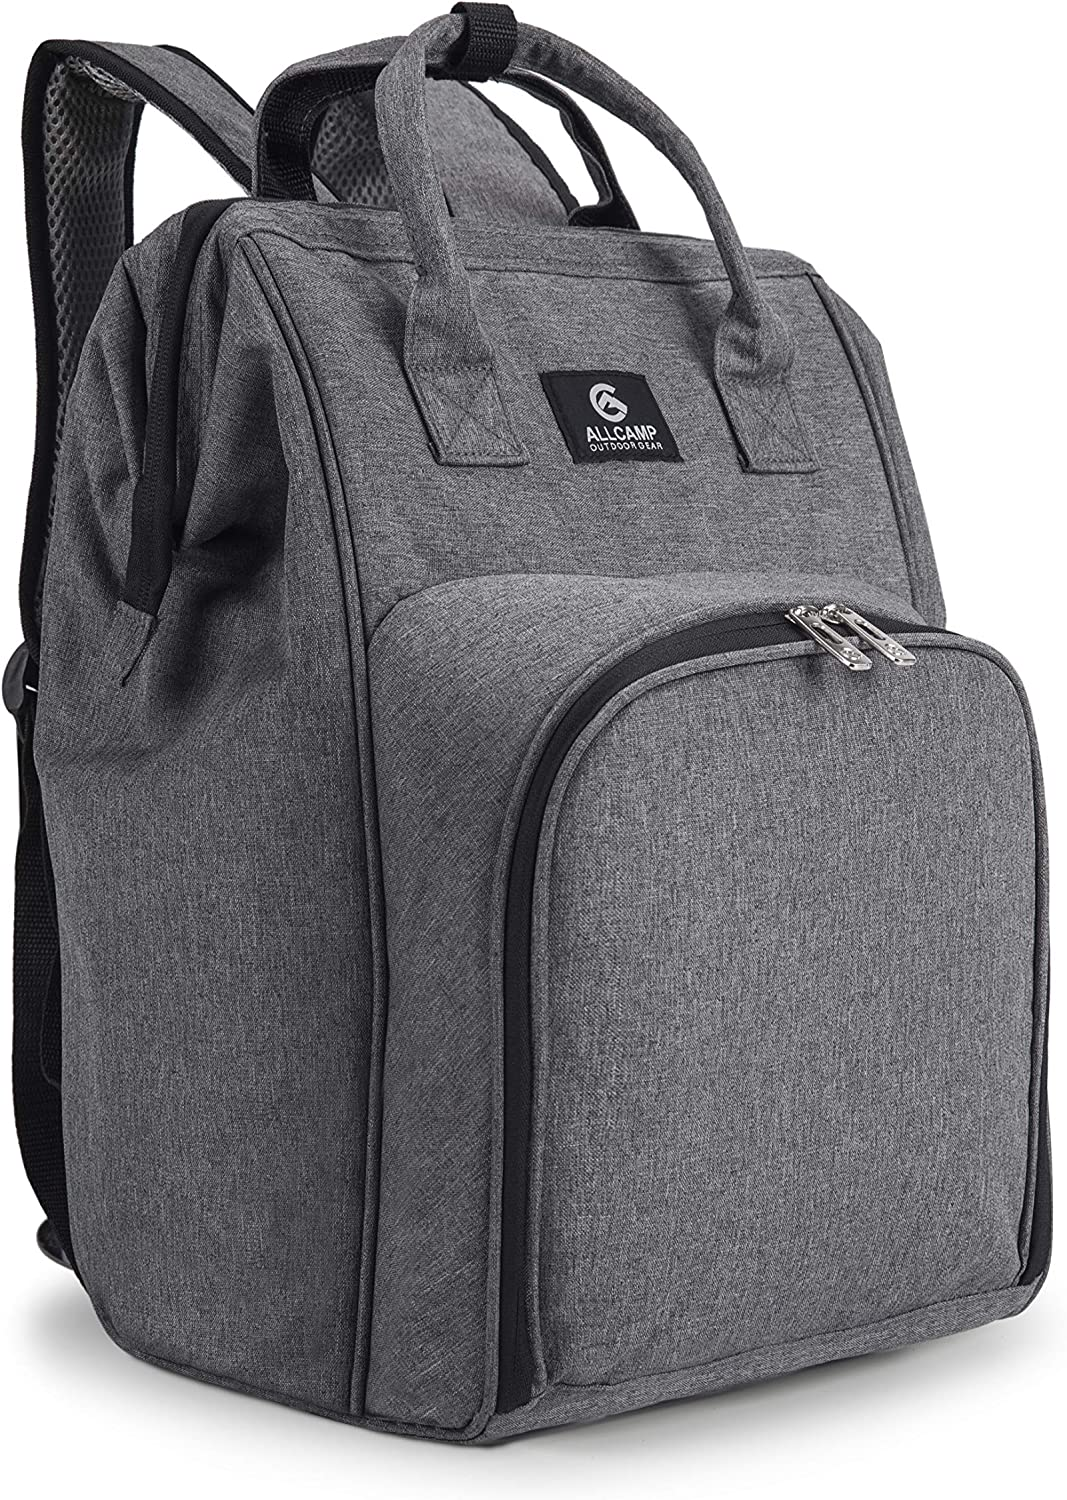 ALLCAMP Picnic Backpack for 2 Person with Fleece Blanket, Plates and Cutlery Set : Patio, Lawn & Garden